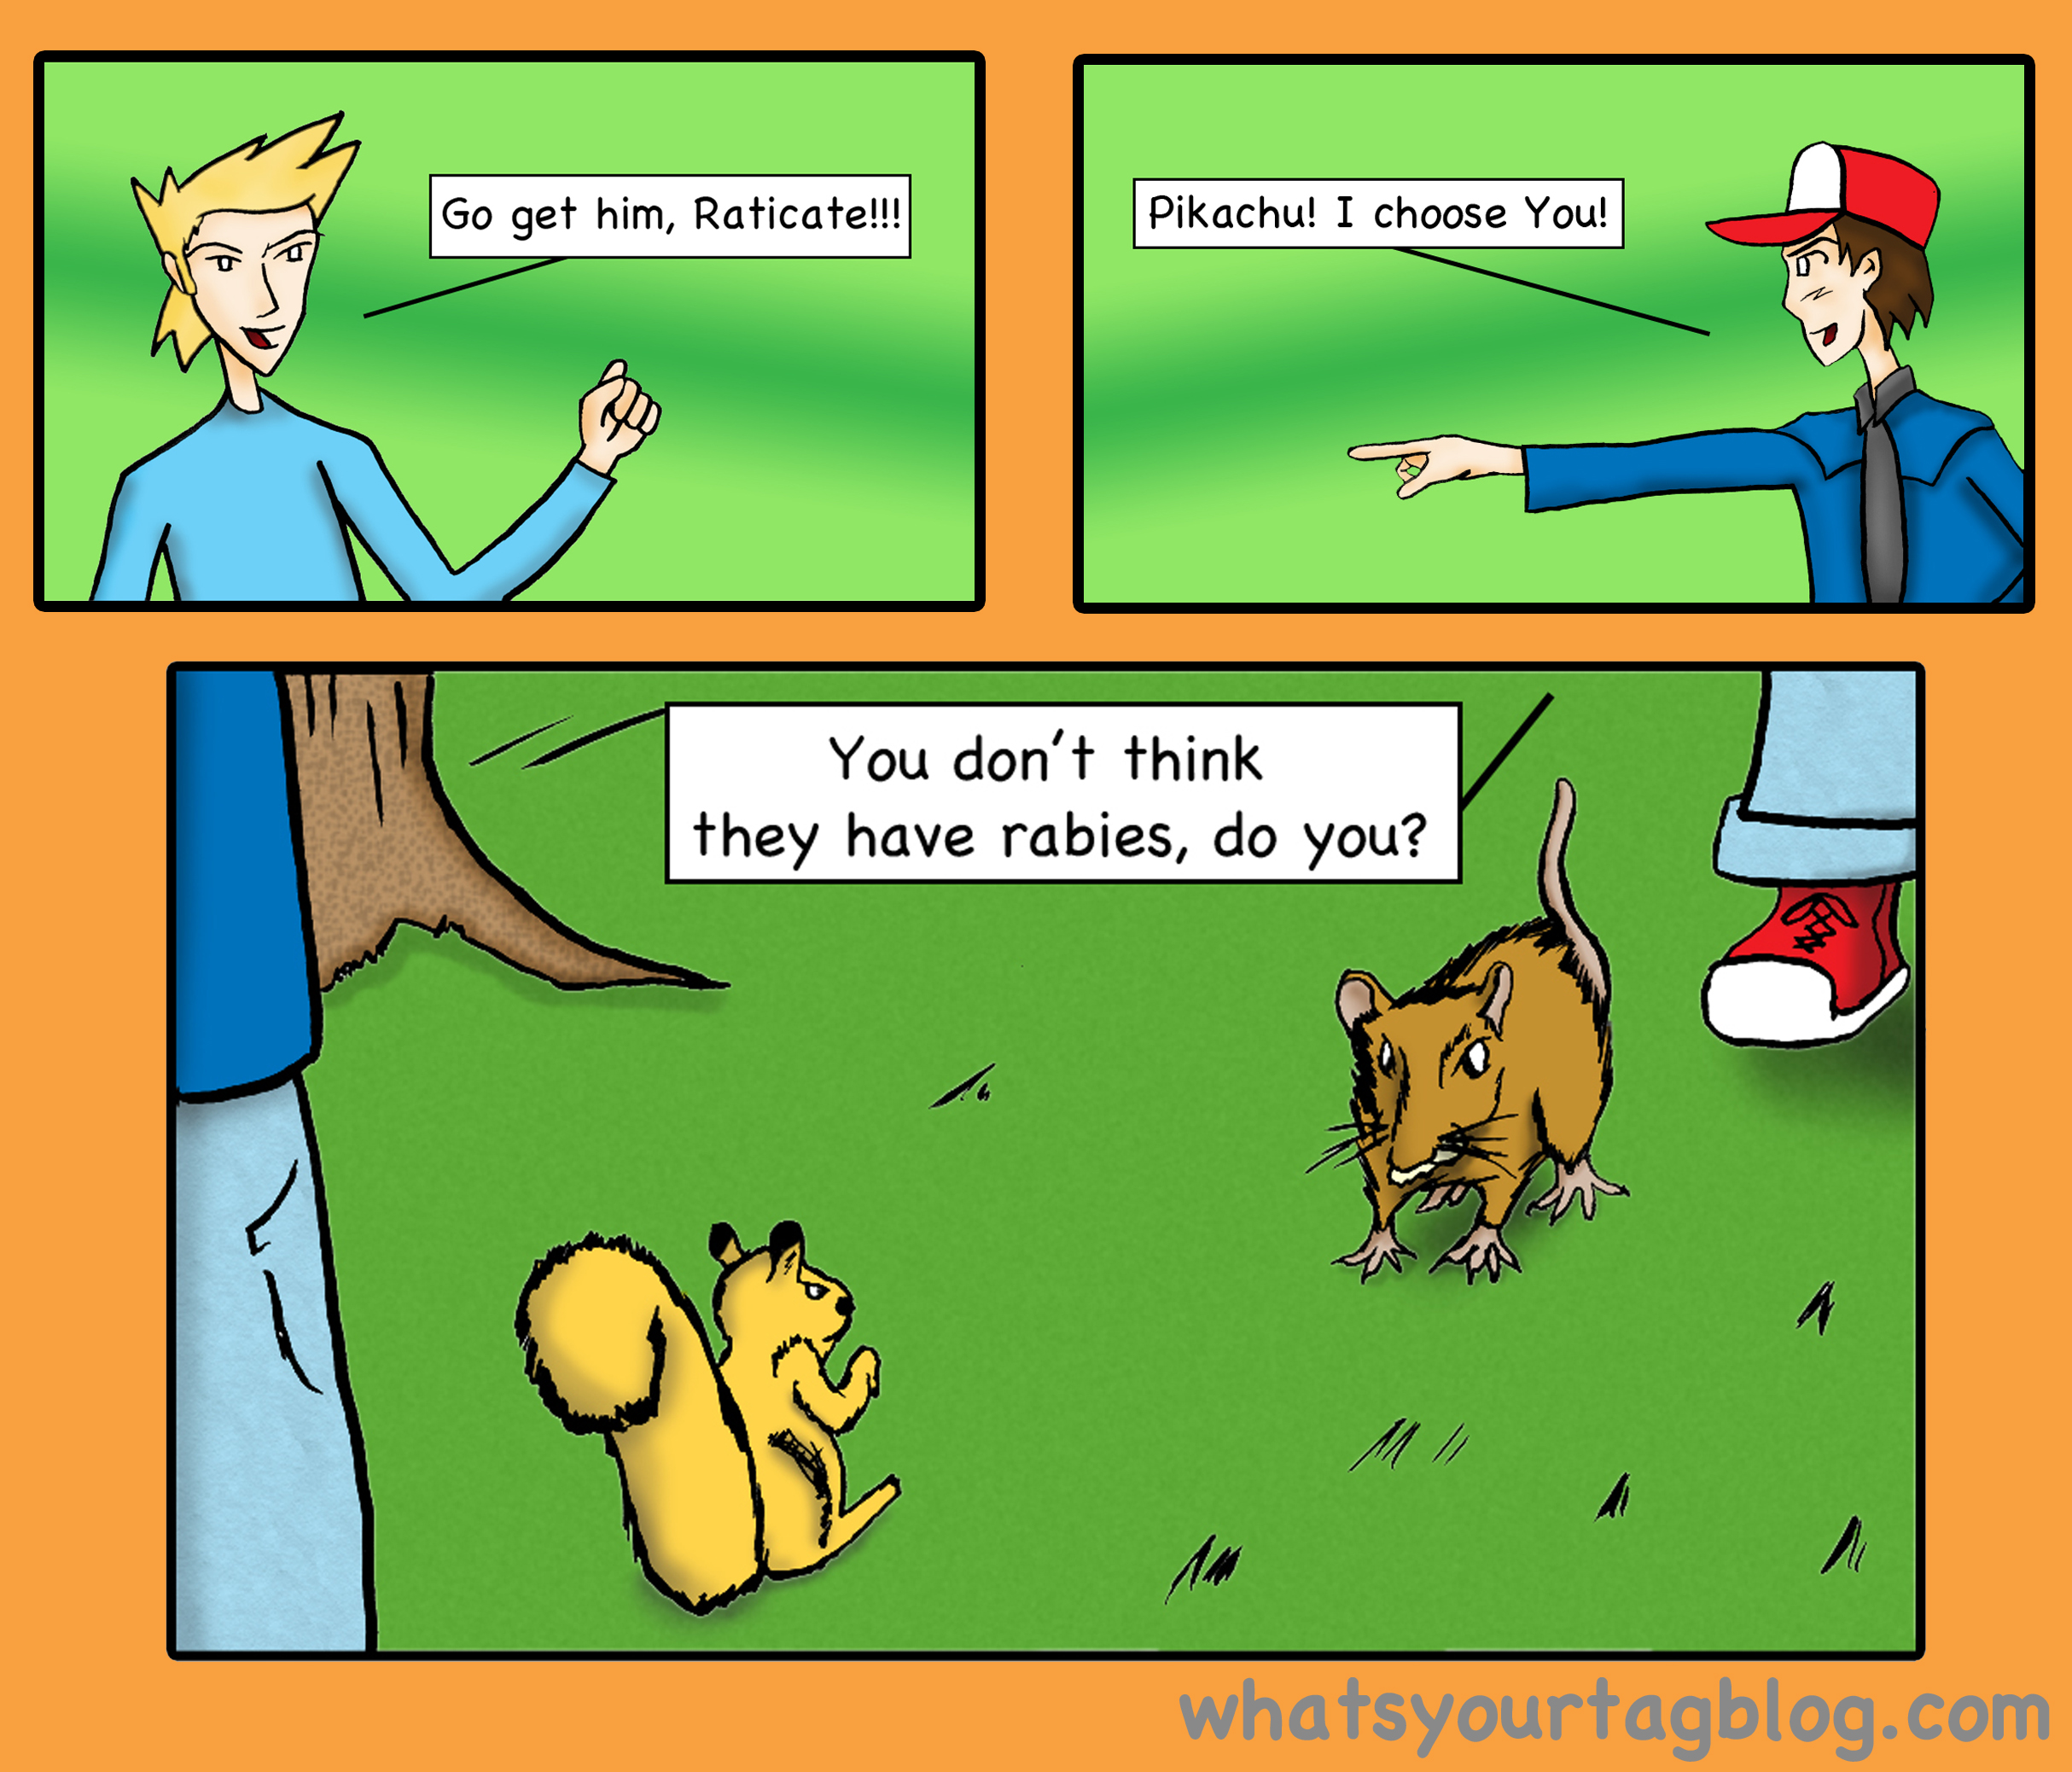 how to find pokemon in real life